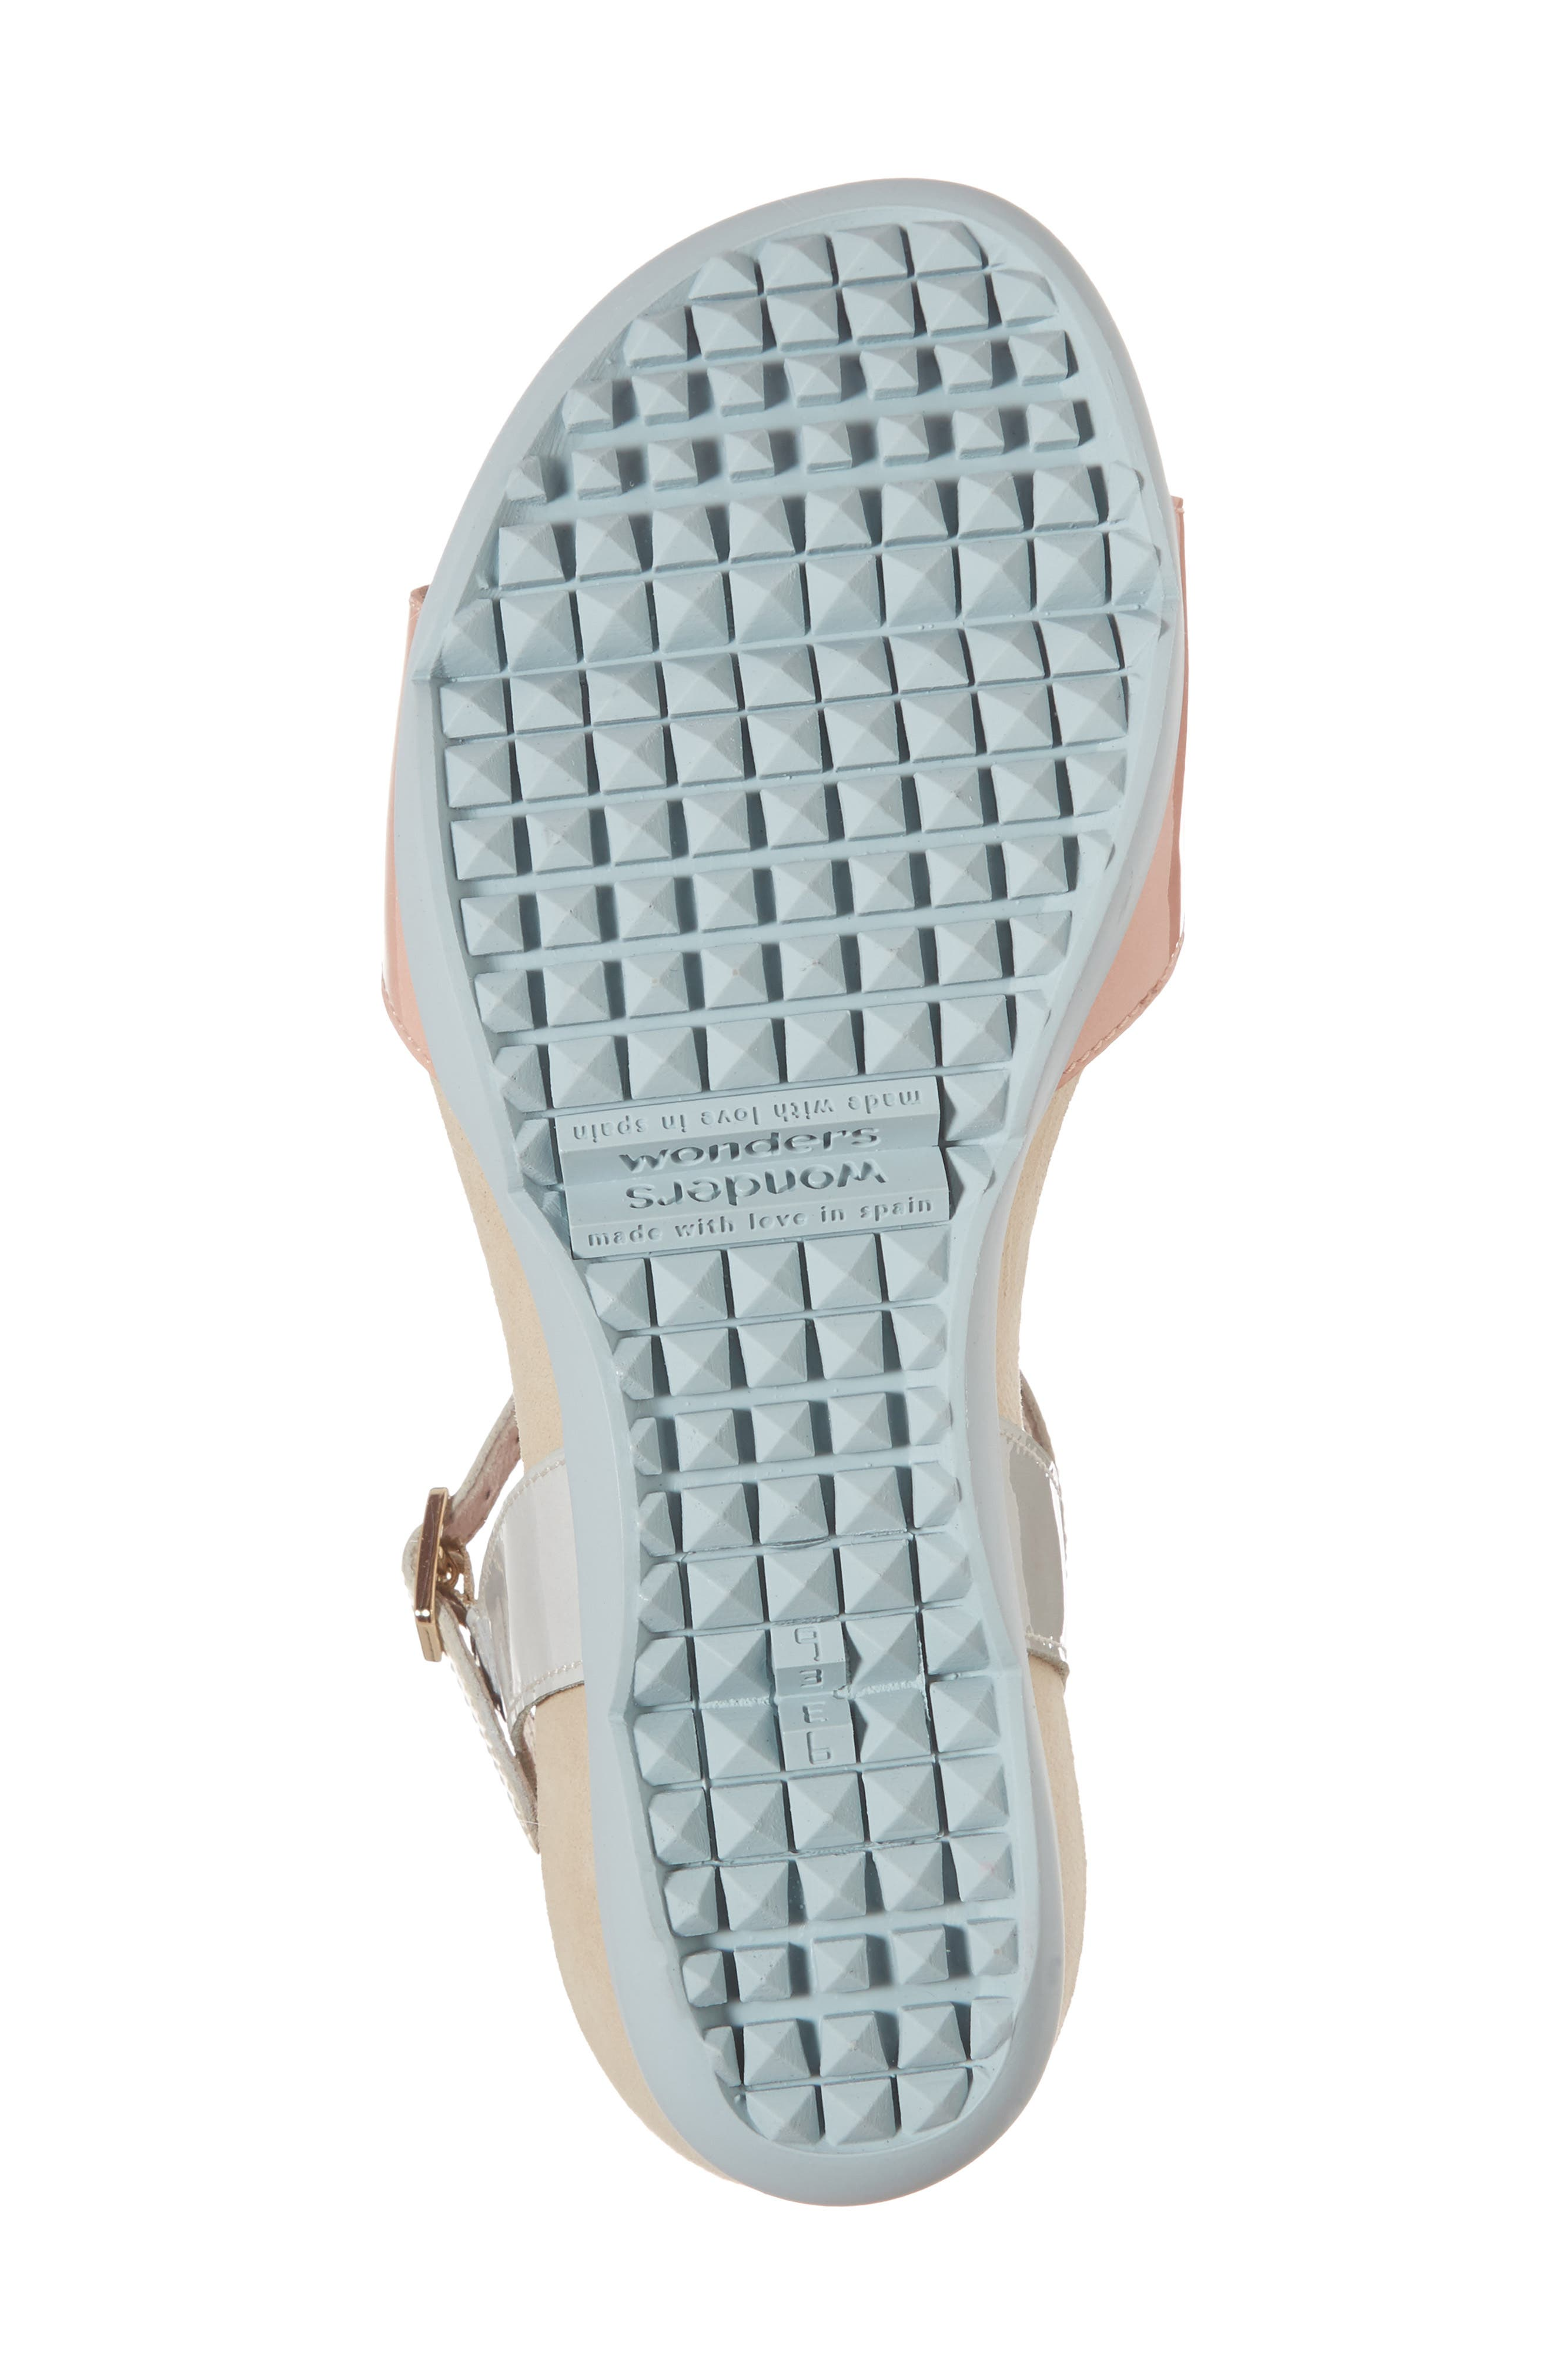 Wedge Sandal,                             Alternate thumbnail 6, color,                             Nude/ Off/ Light Grey Leather